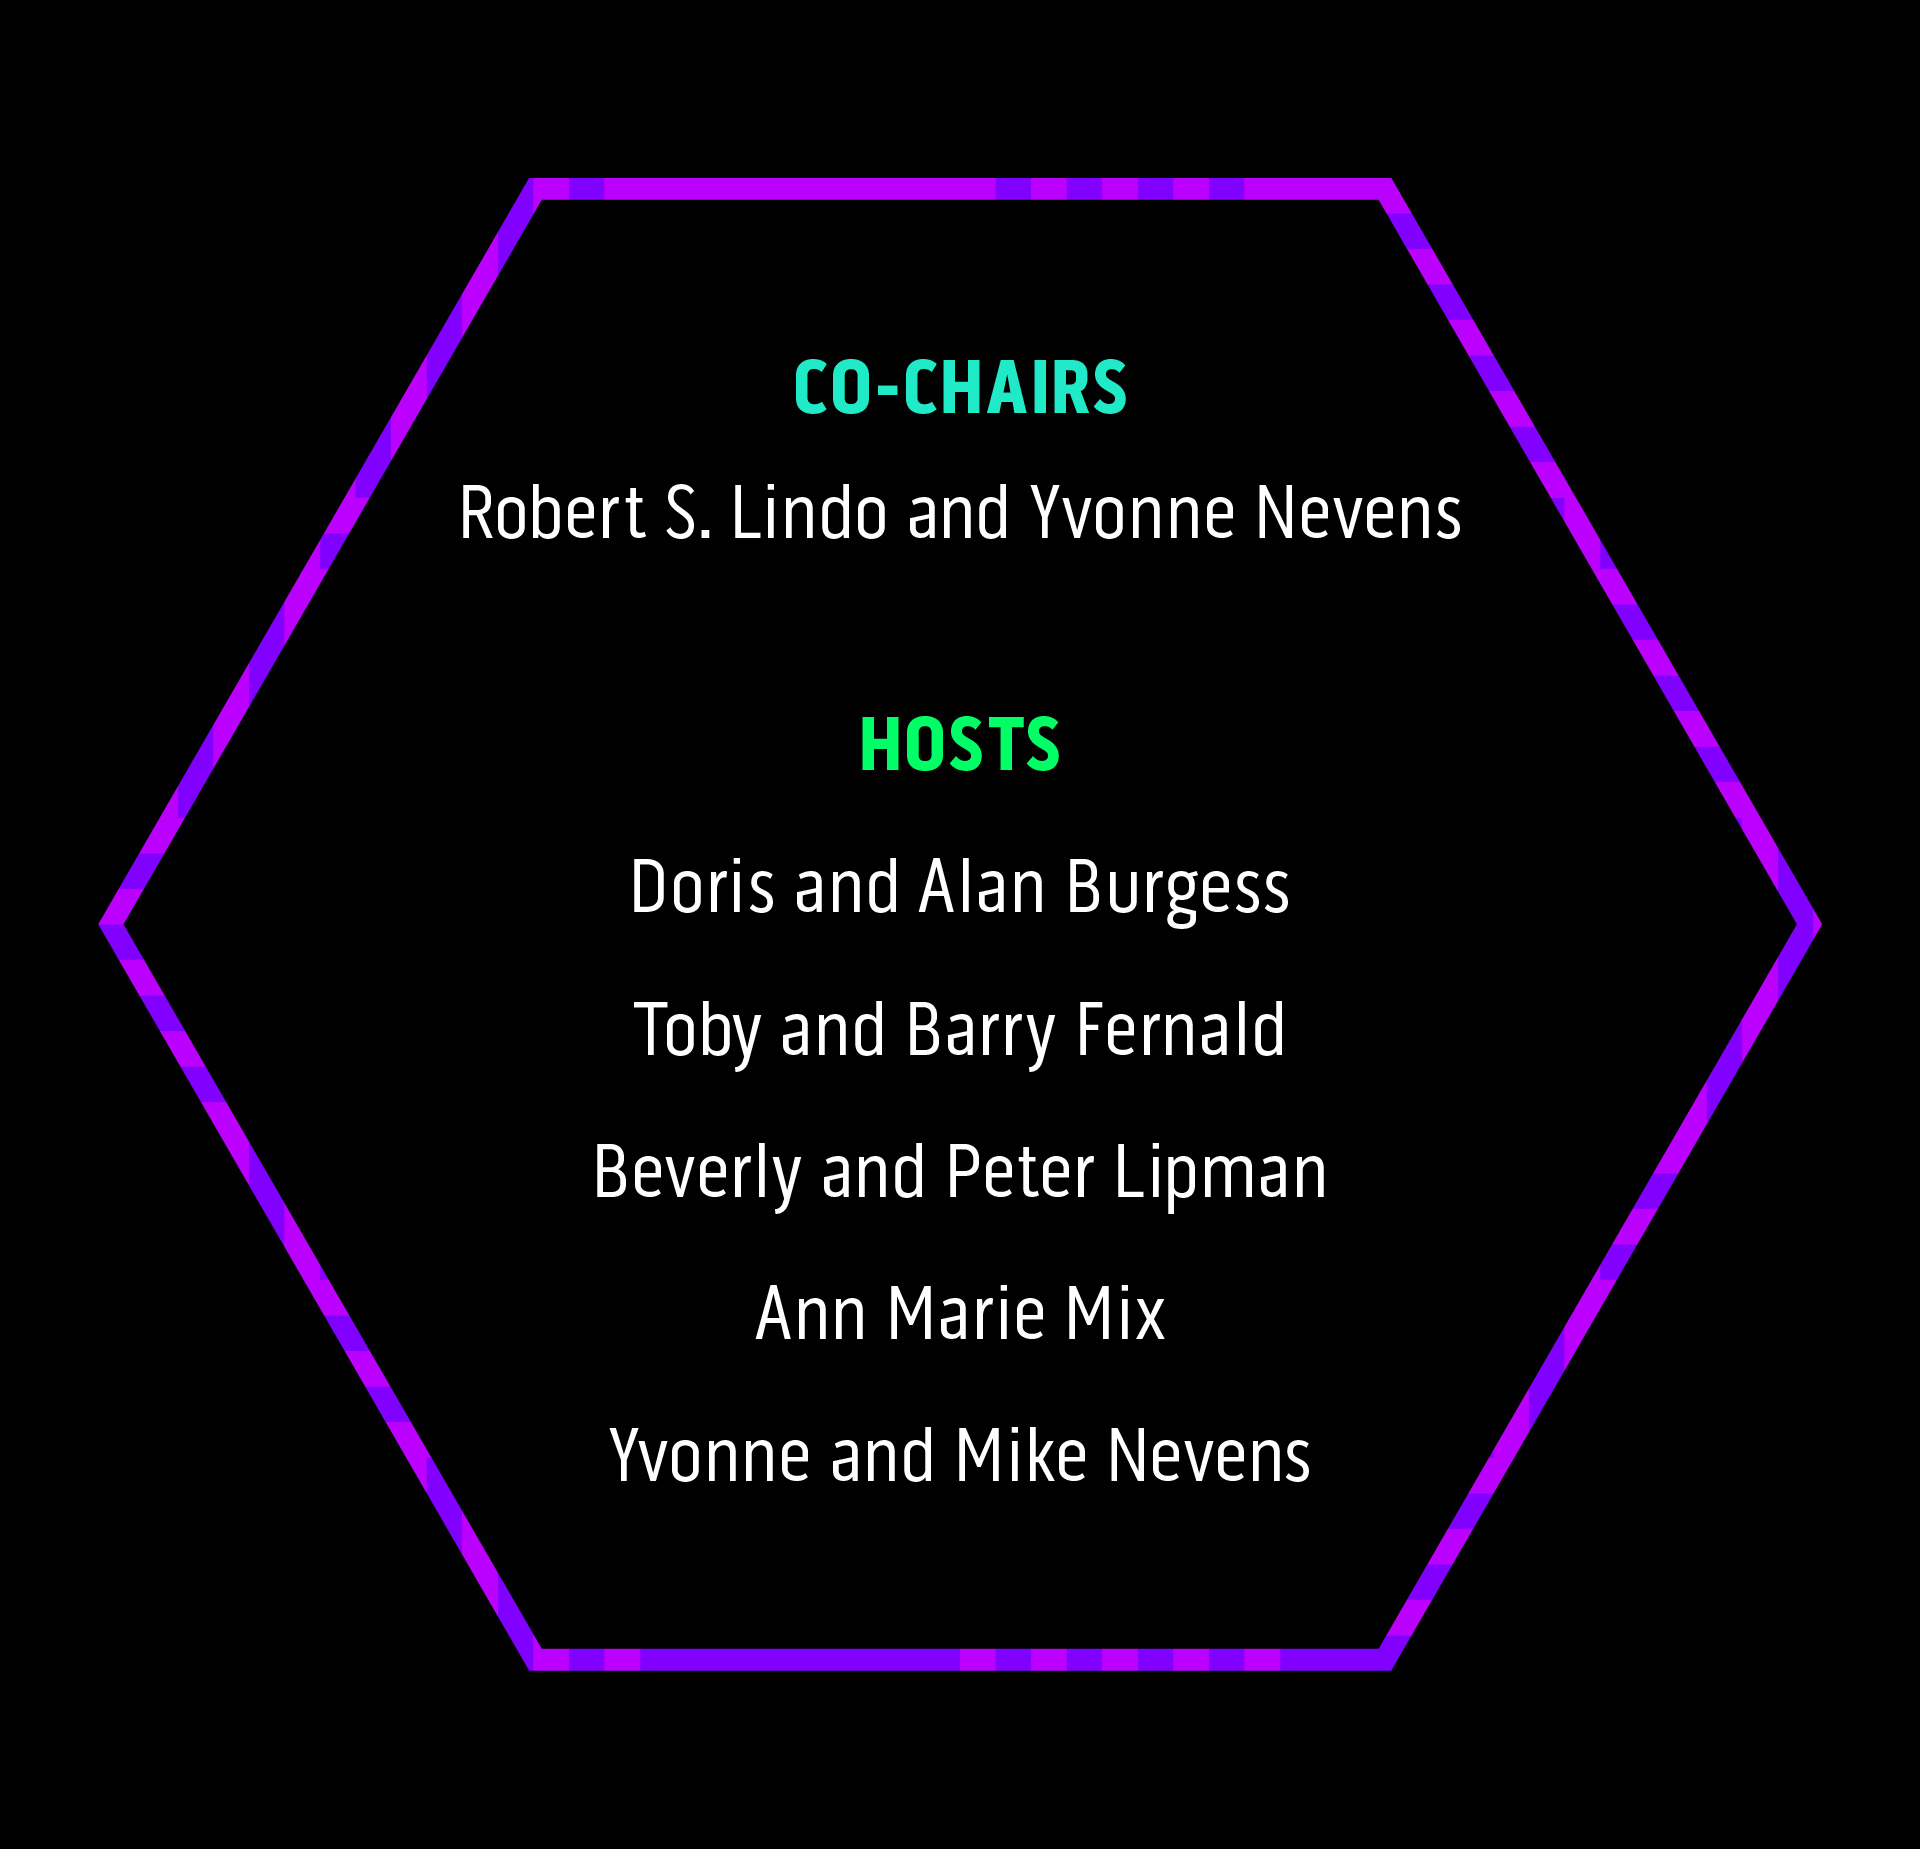 List of names of Co-Chairs and Hosts